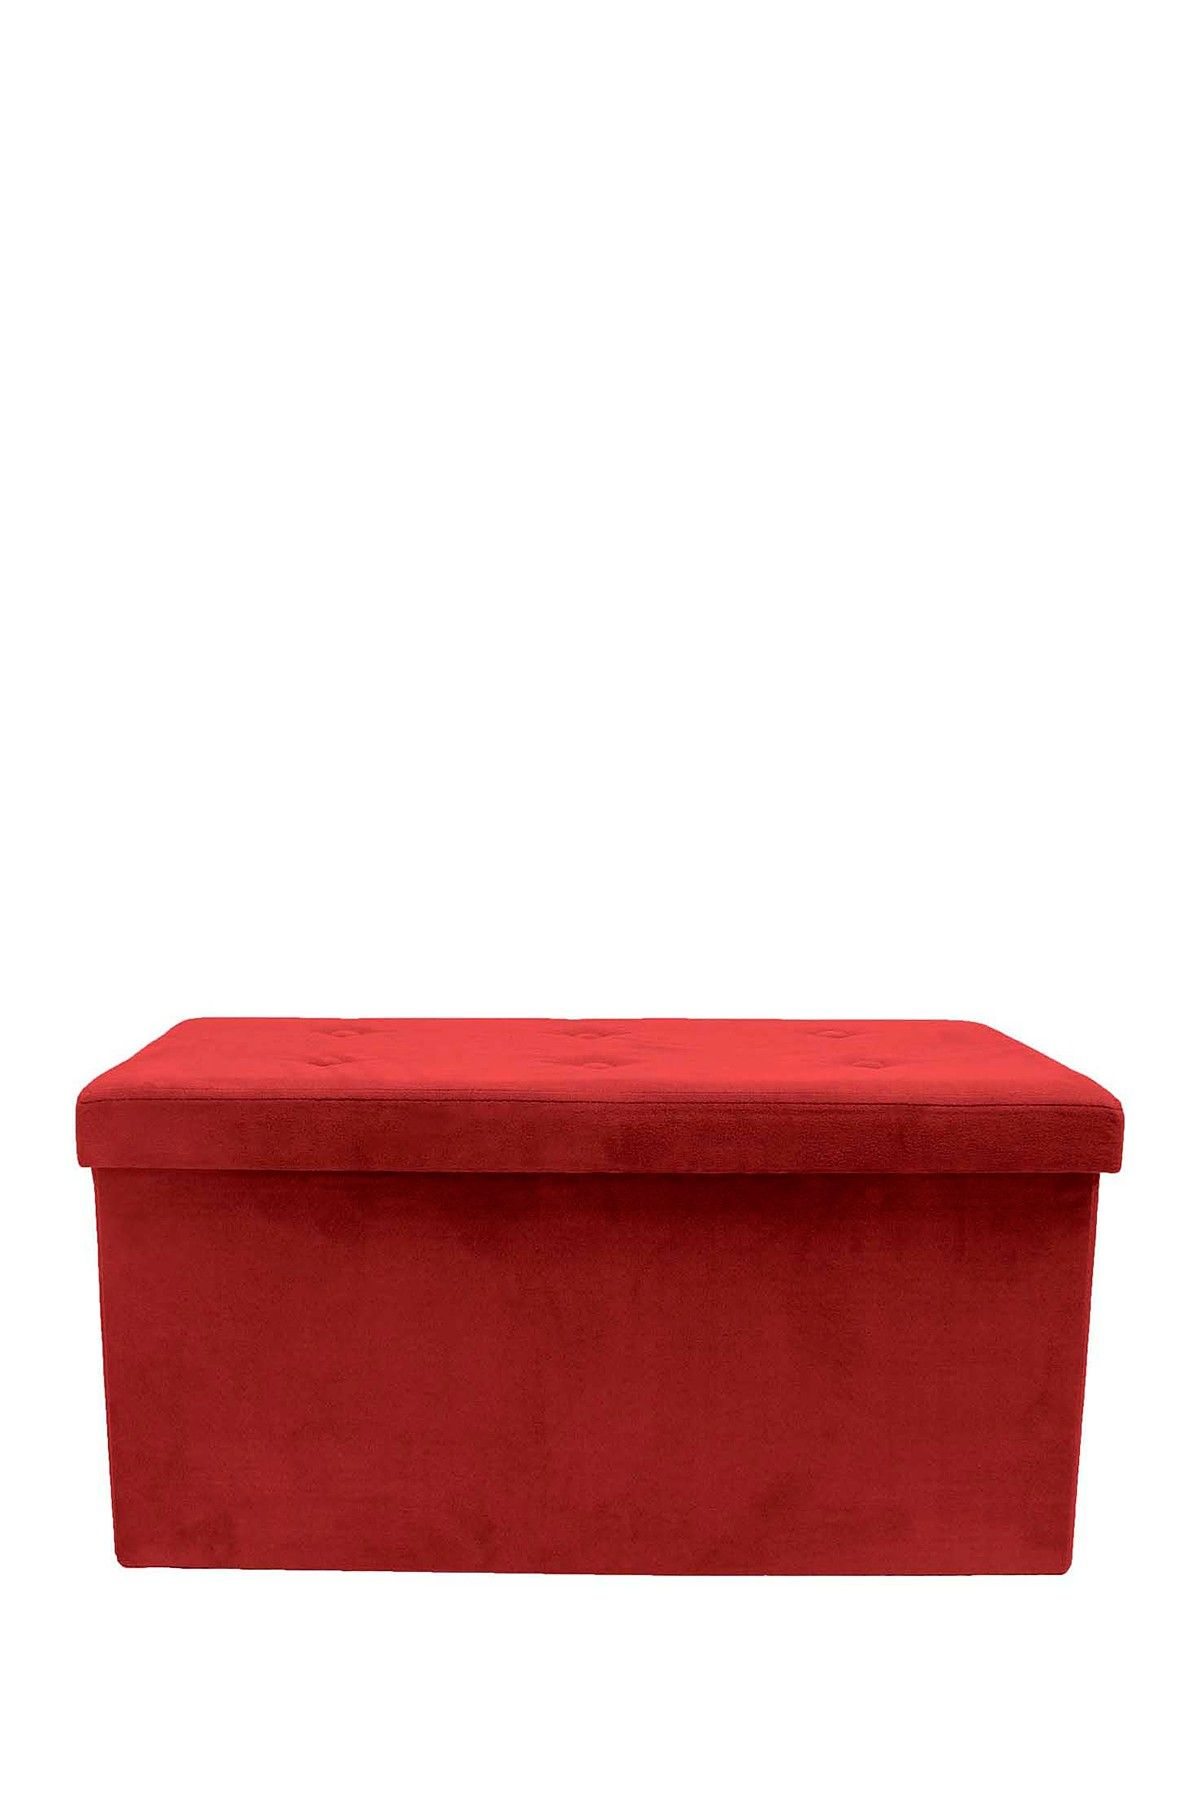 Sorbus Faux Suede Foldable Storage Bench   Red